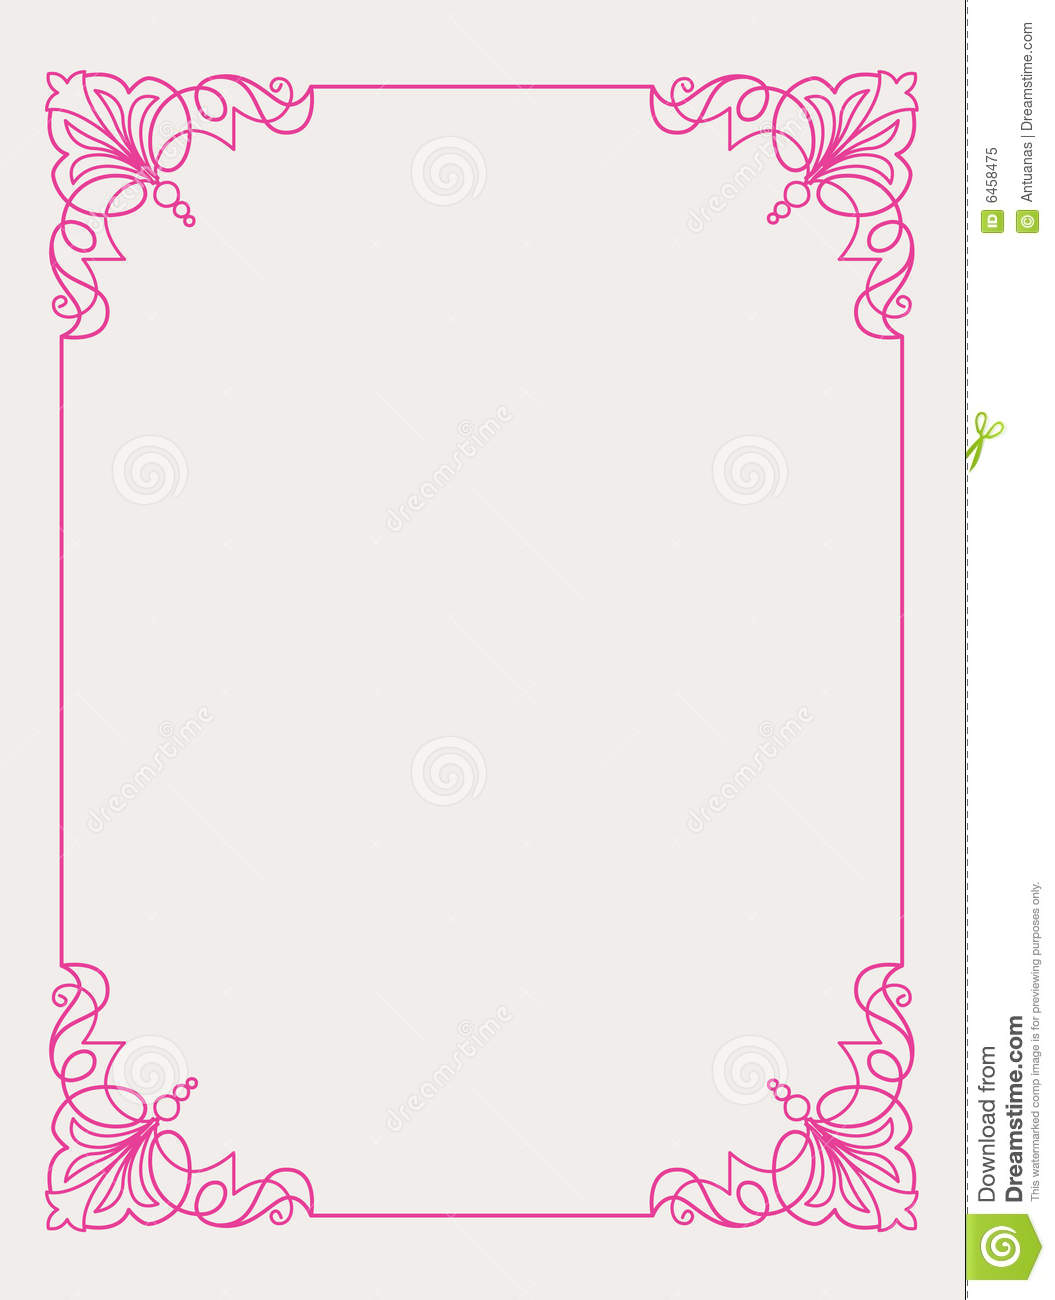 Pink Frame Design Royalty Free Stock Photo - Image: 6458475